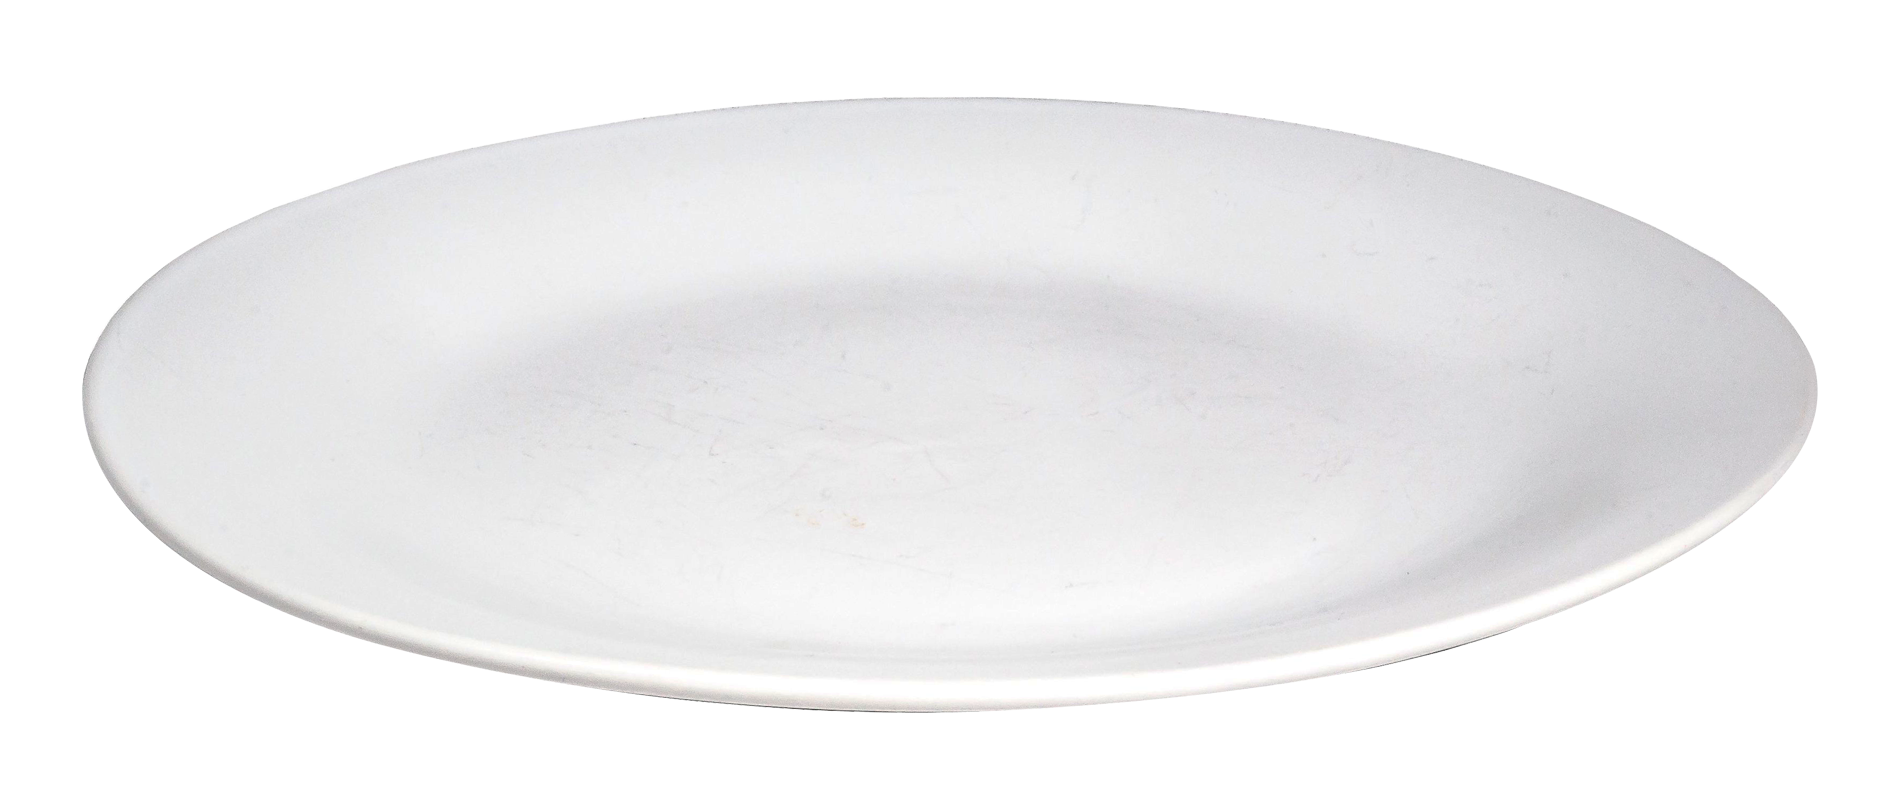 Plate Png Transparent Image - Plate, Transparent background PNG HD thumbnail